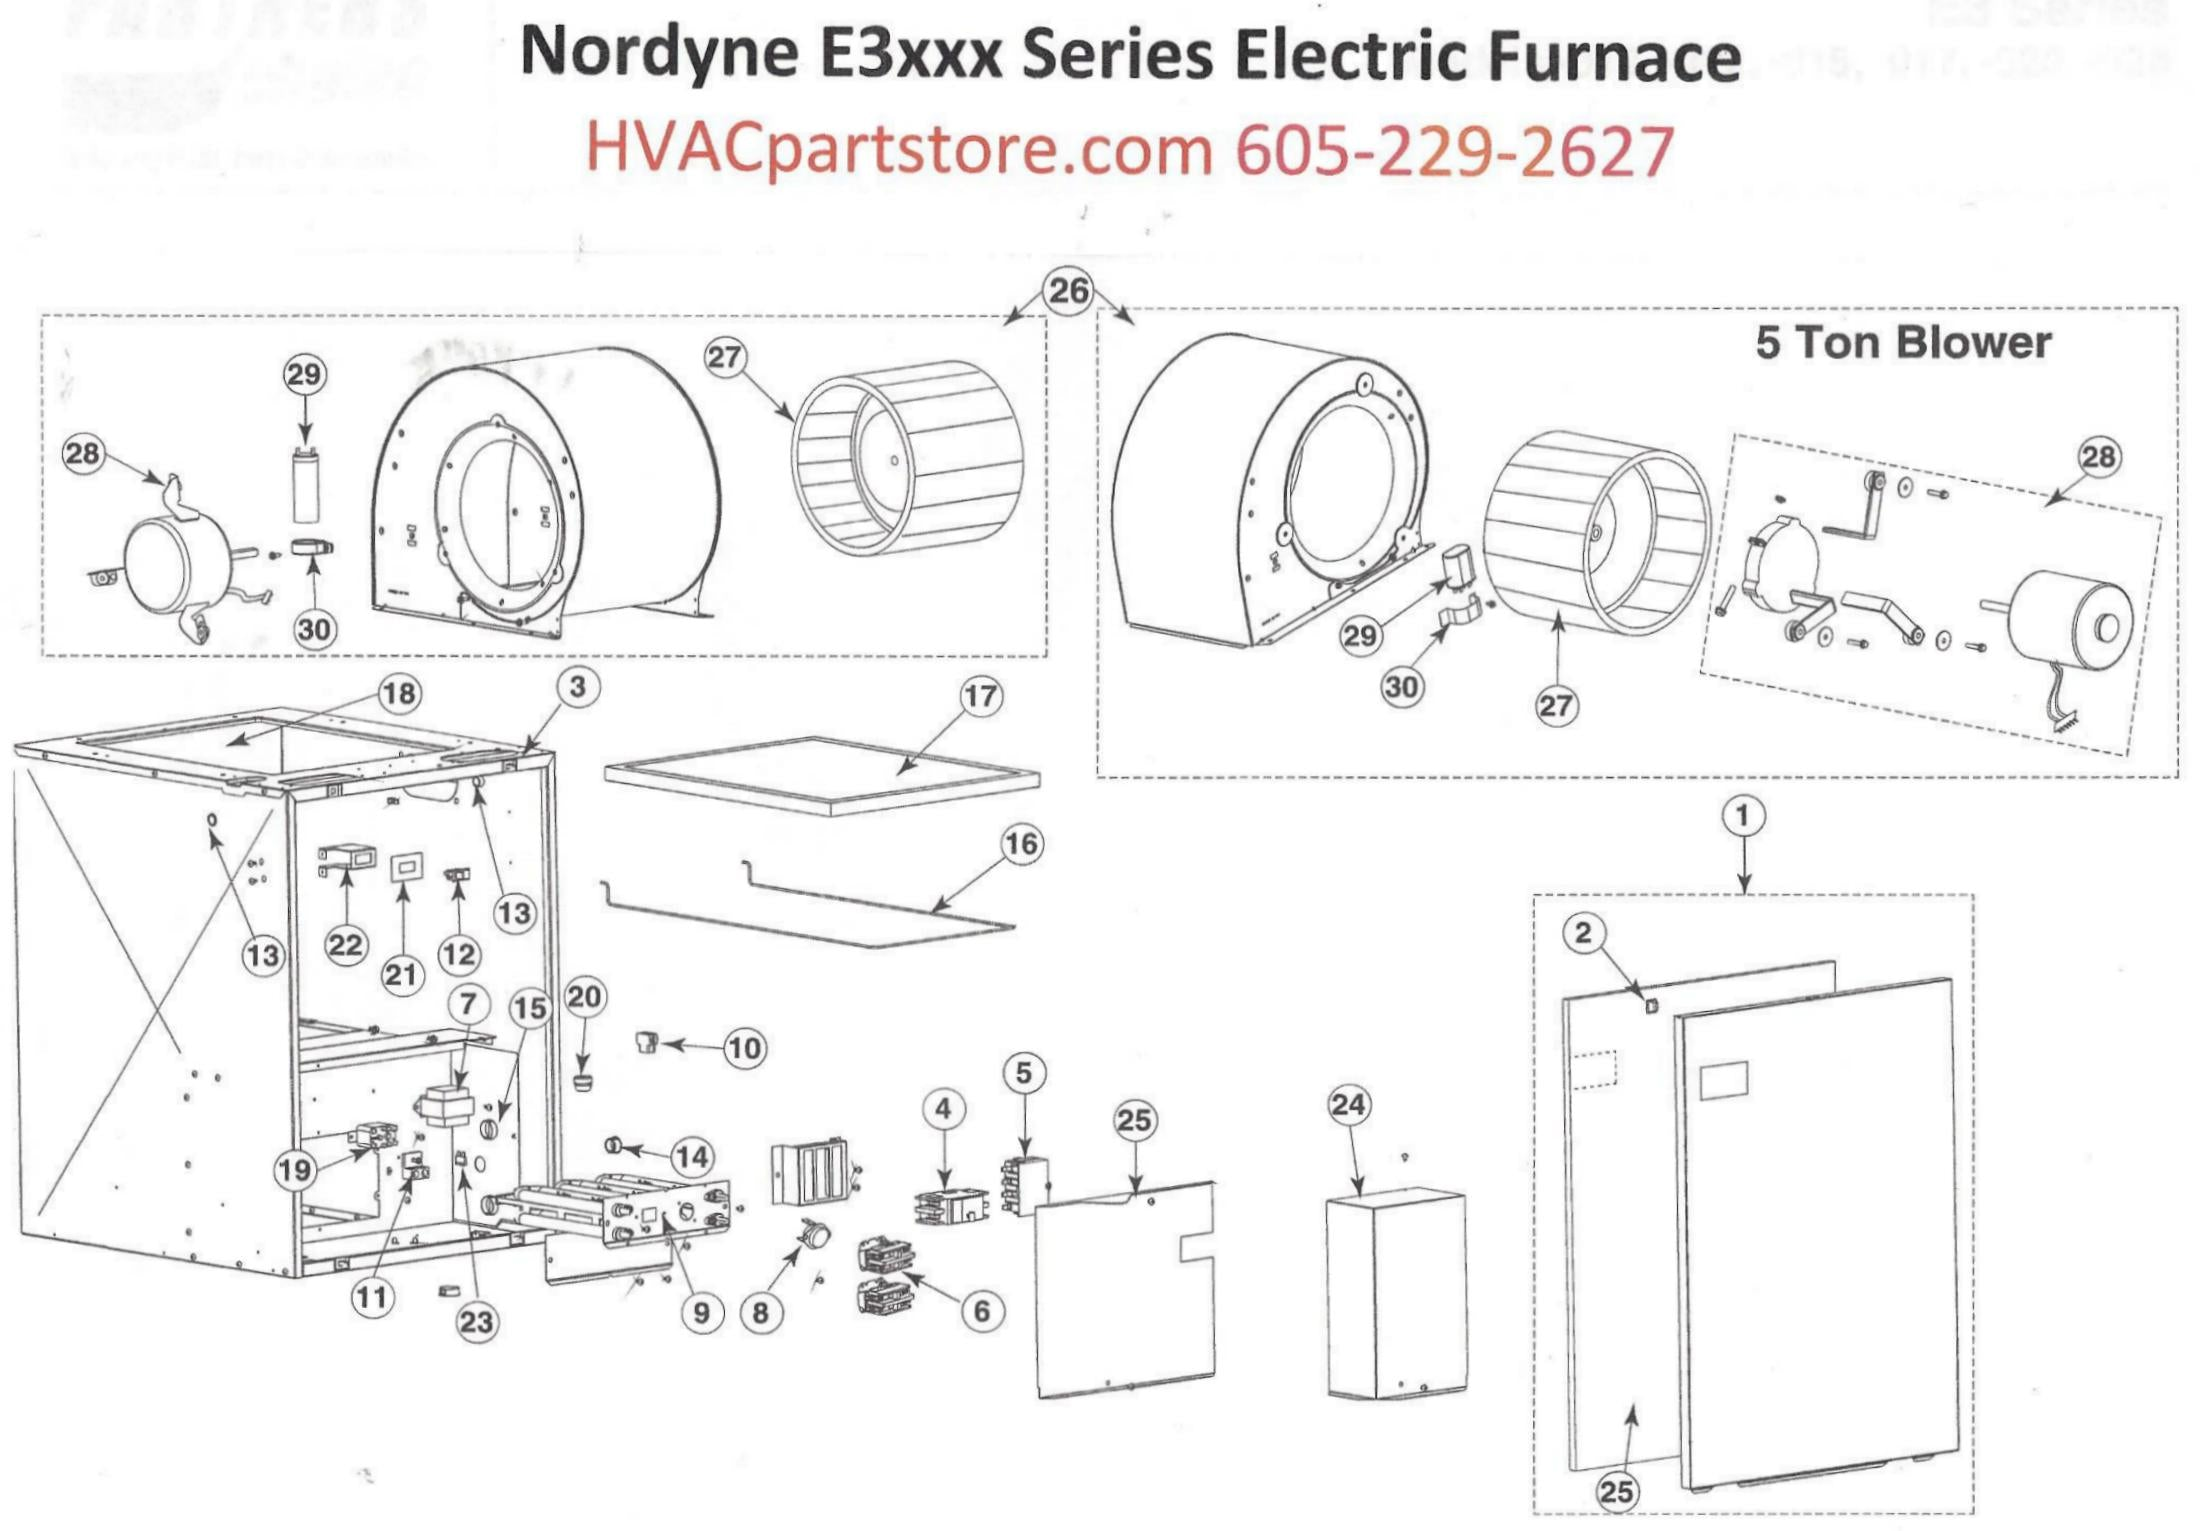 Intertherm Parts Diagram Wiring Schematic 2019 E2eb 012ha Nordyne Furnace Electrical